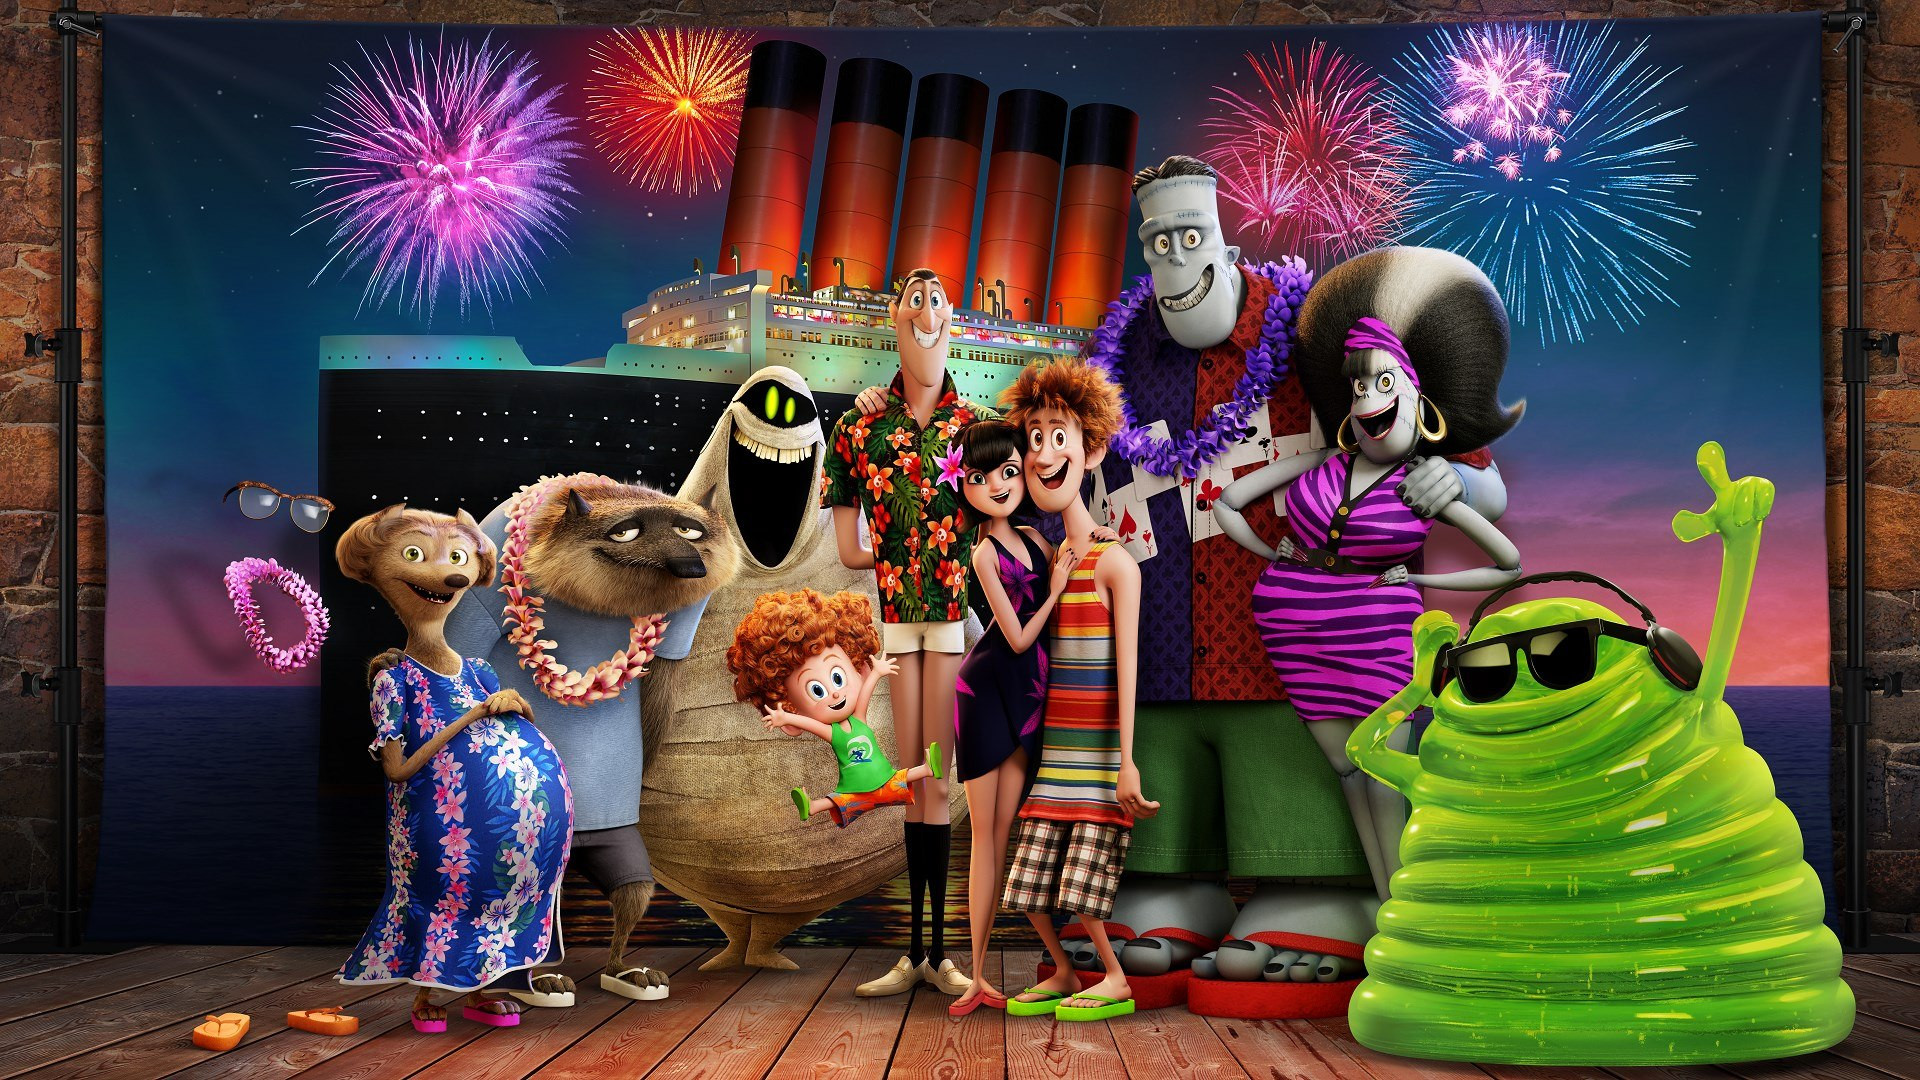 Image Hotel Transylvania 3 school holiday program July Winter 2018 Communities@Work